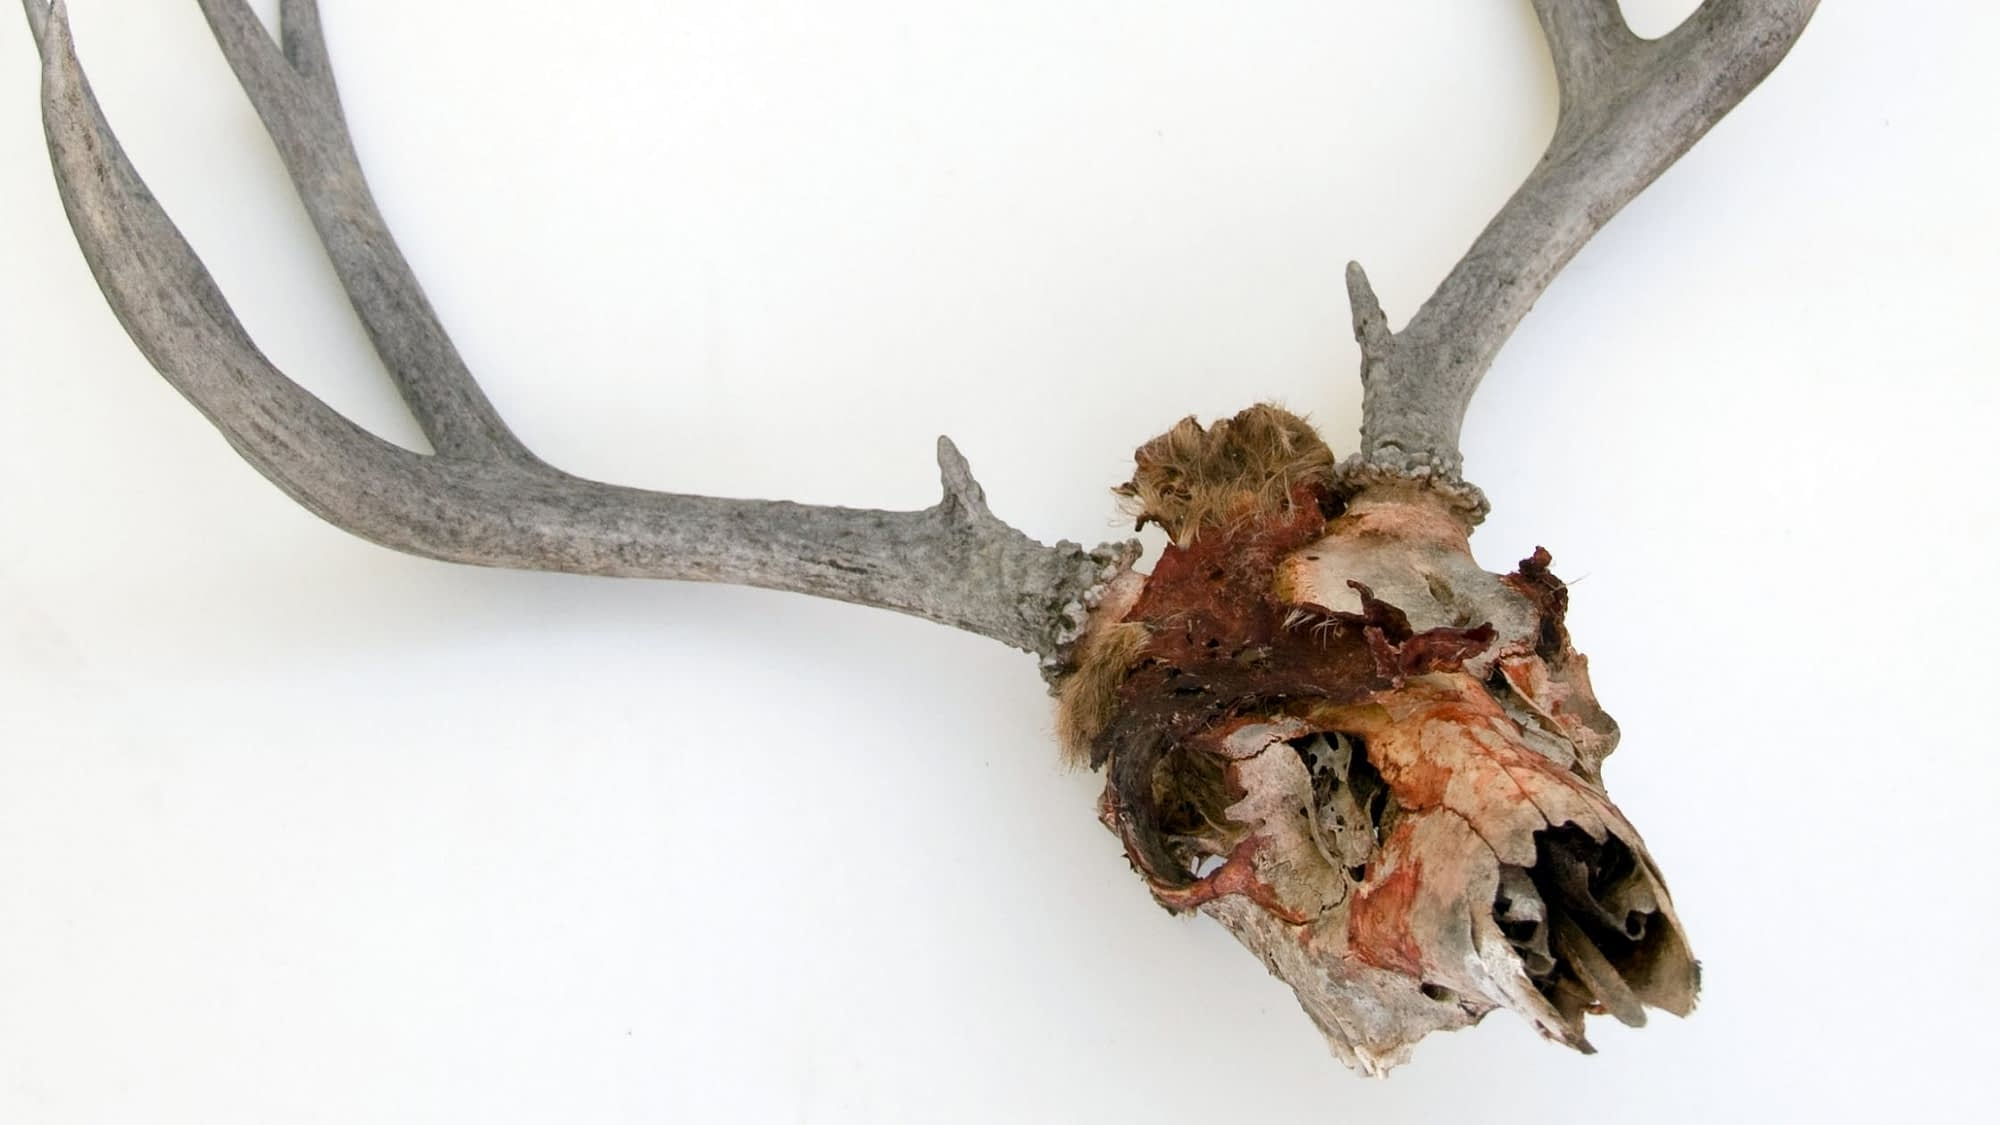 How to clean a deer skull found in the woods